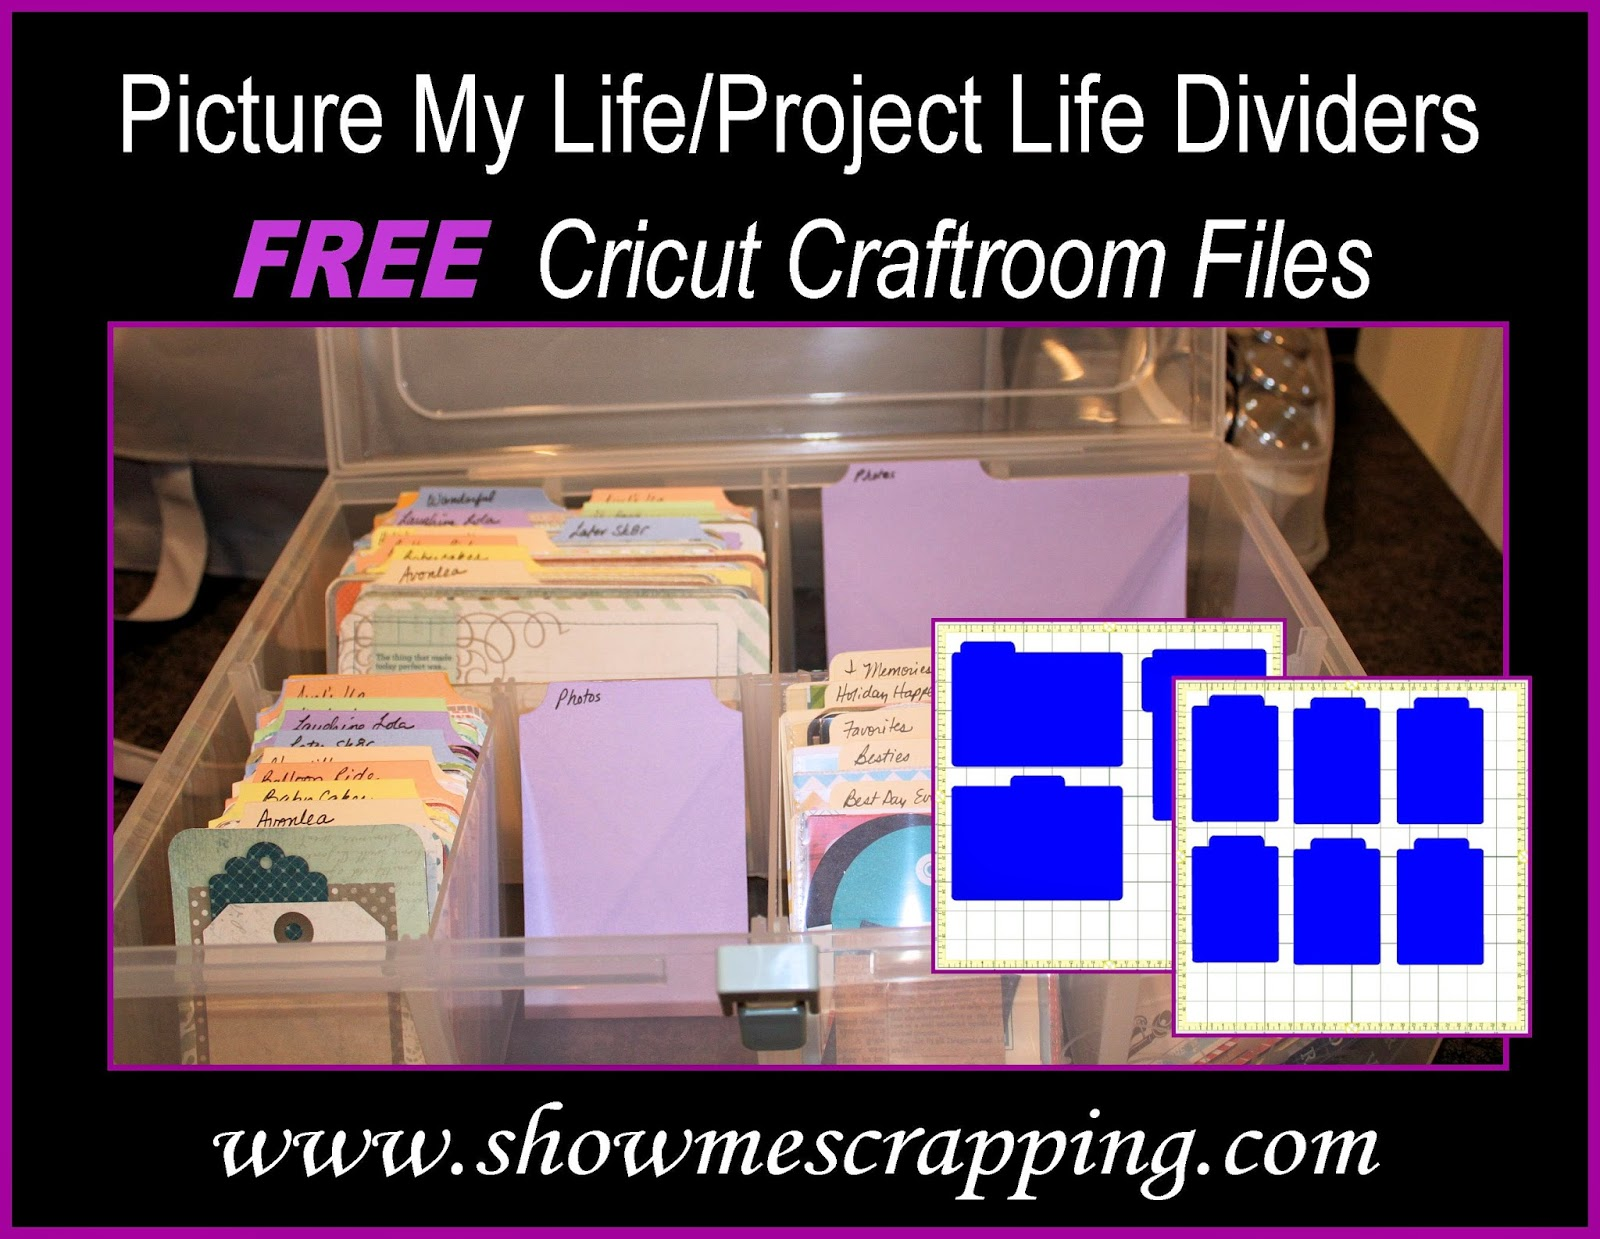 Free Cricut Craft Room: Show Me Scrapping Blog: Organize Your Picture My Life With